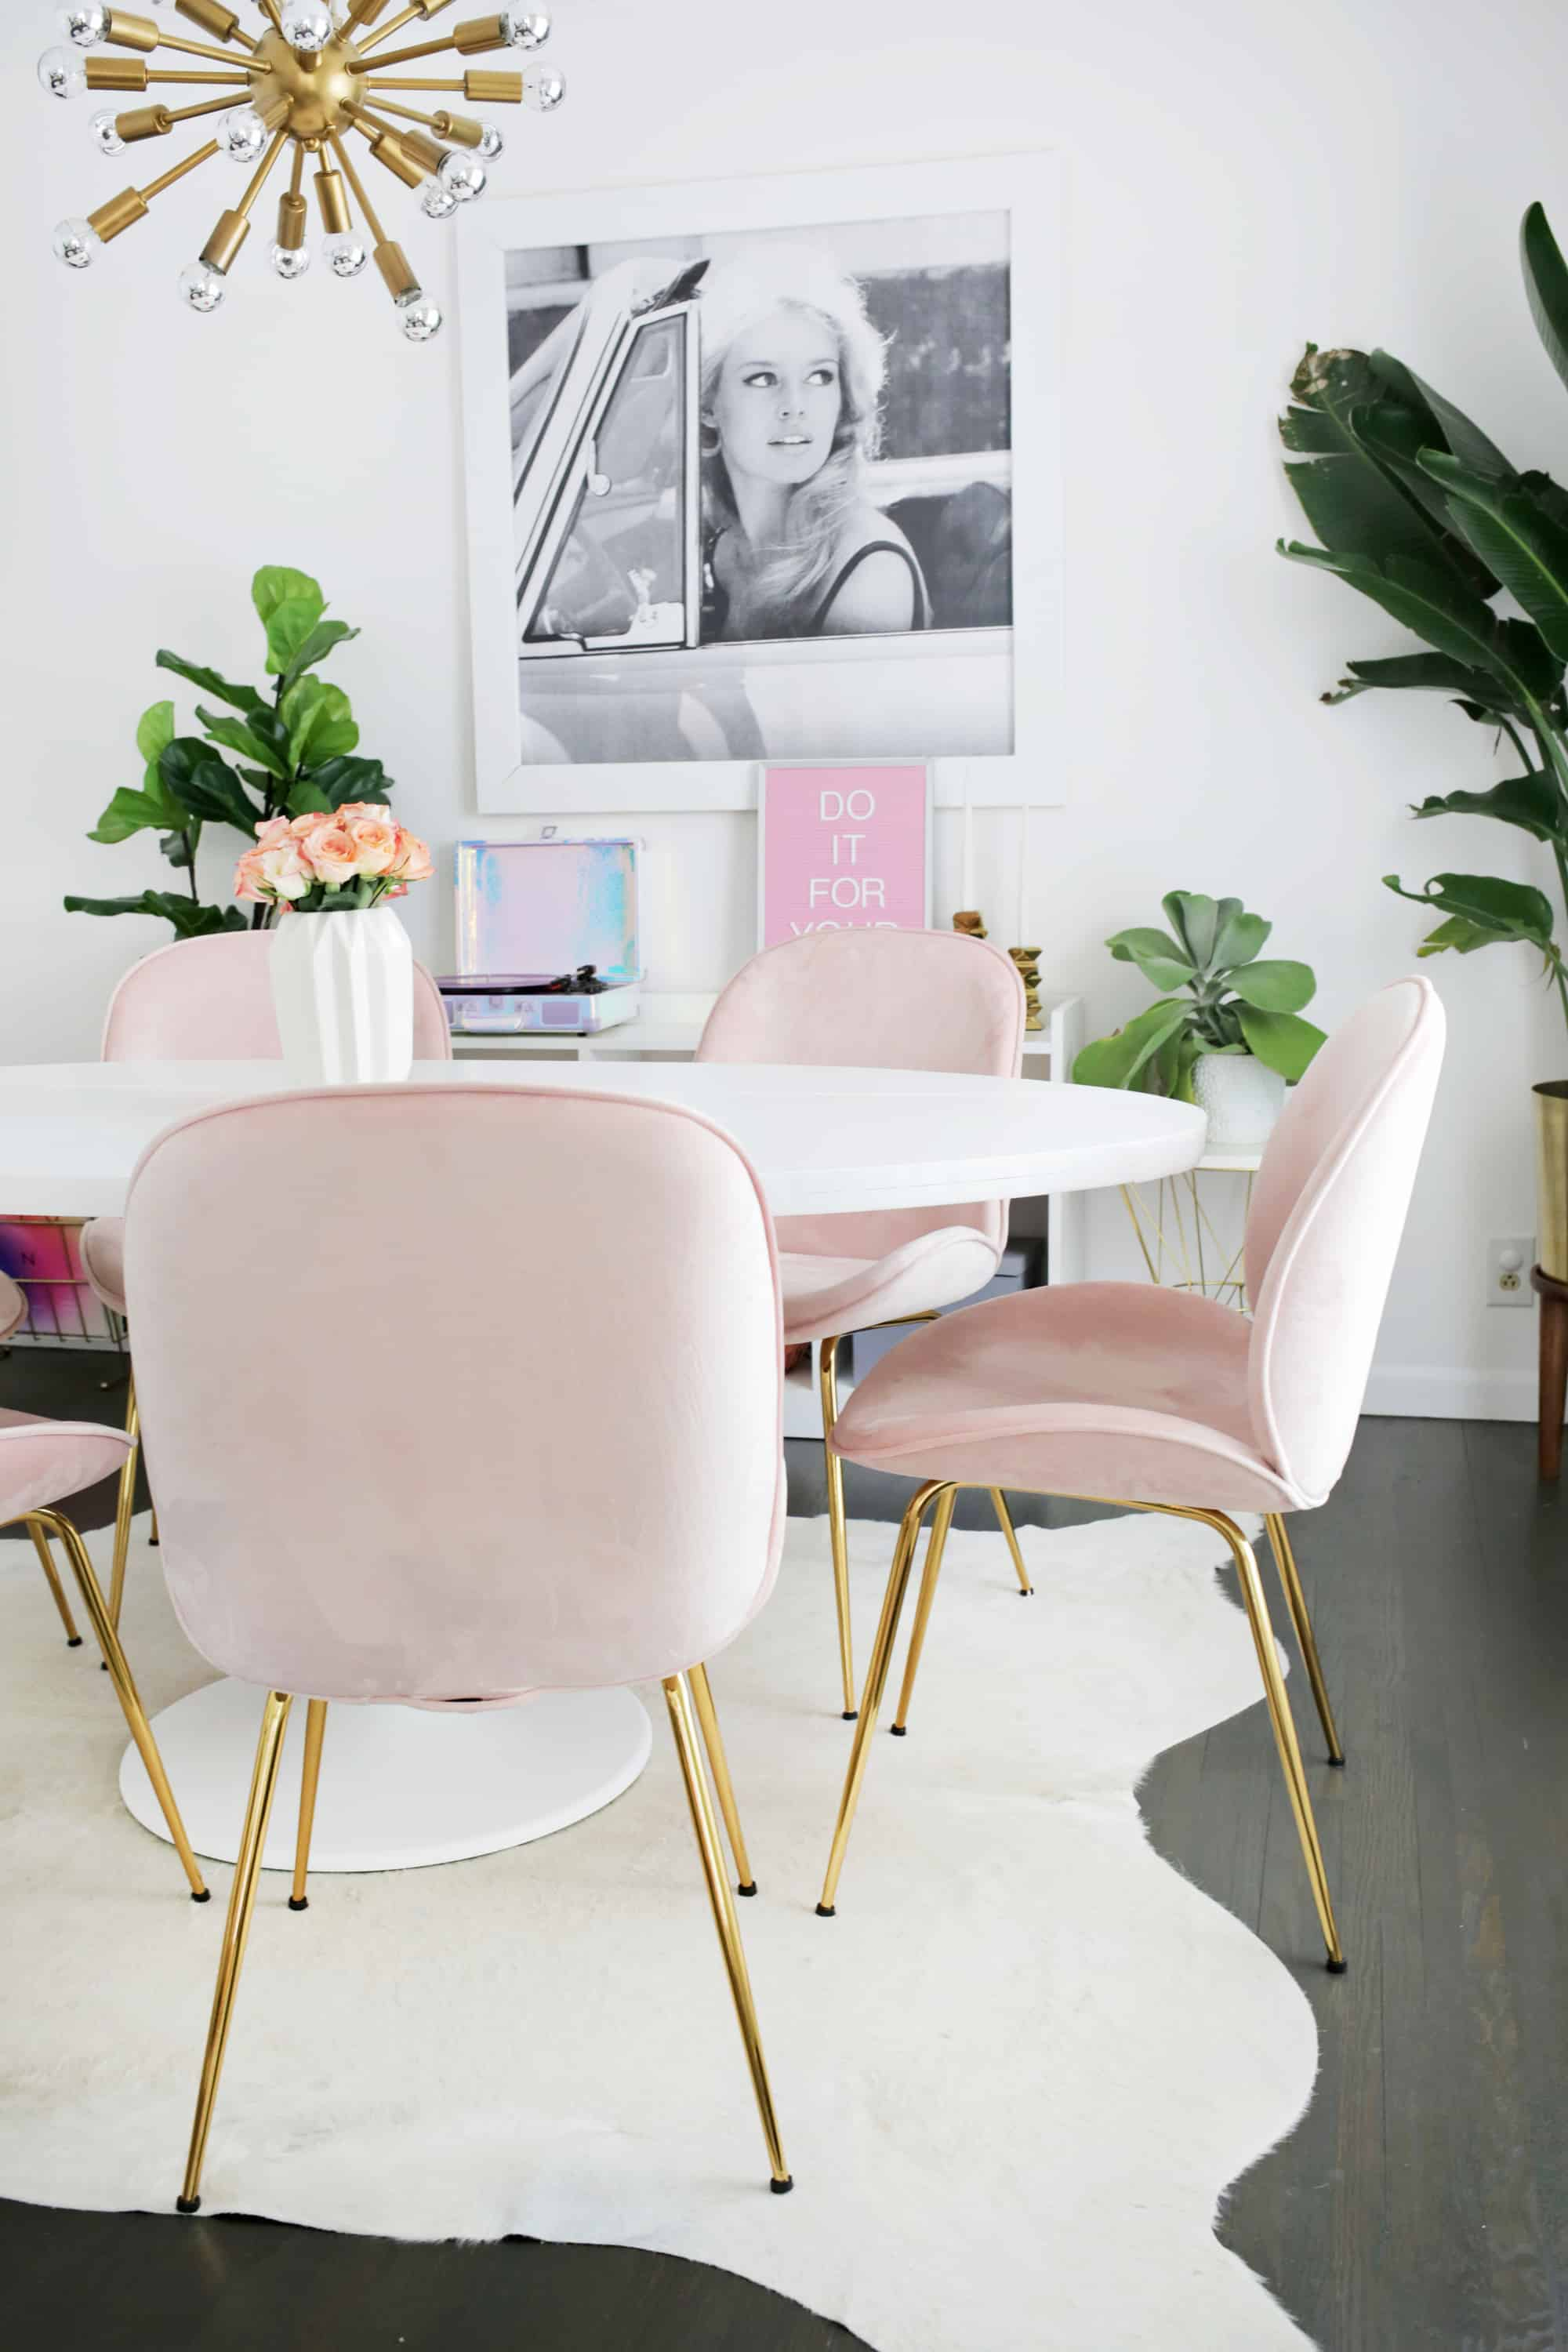 How I Found My Dream Dining Chairs!